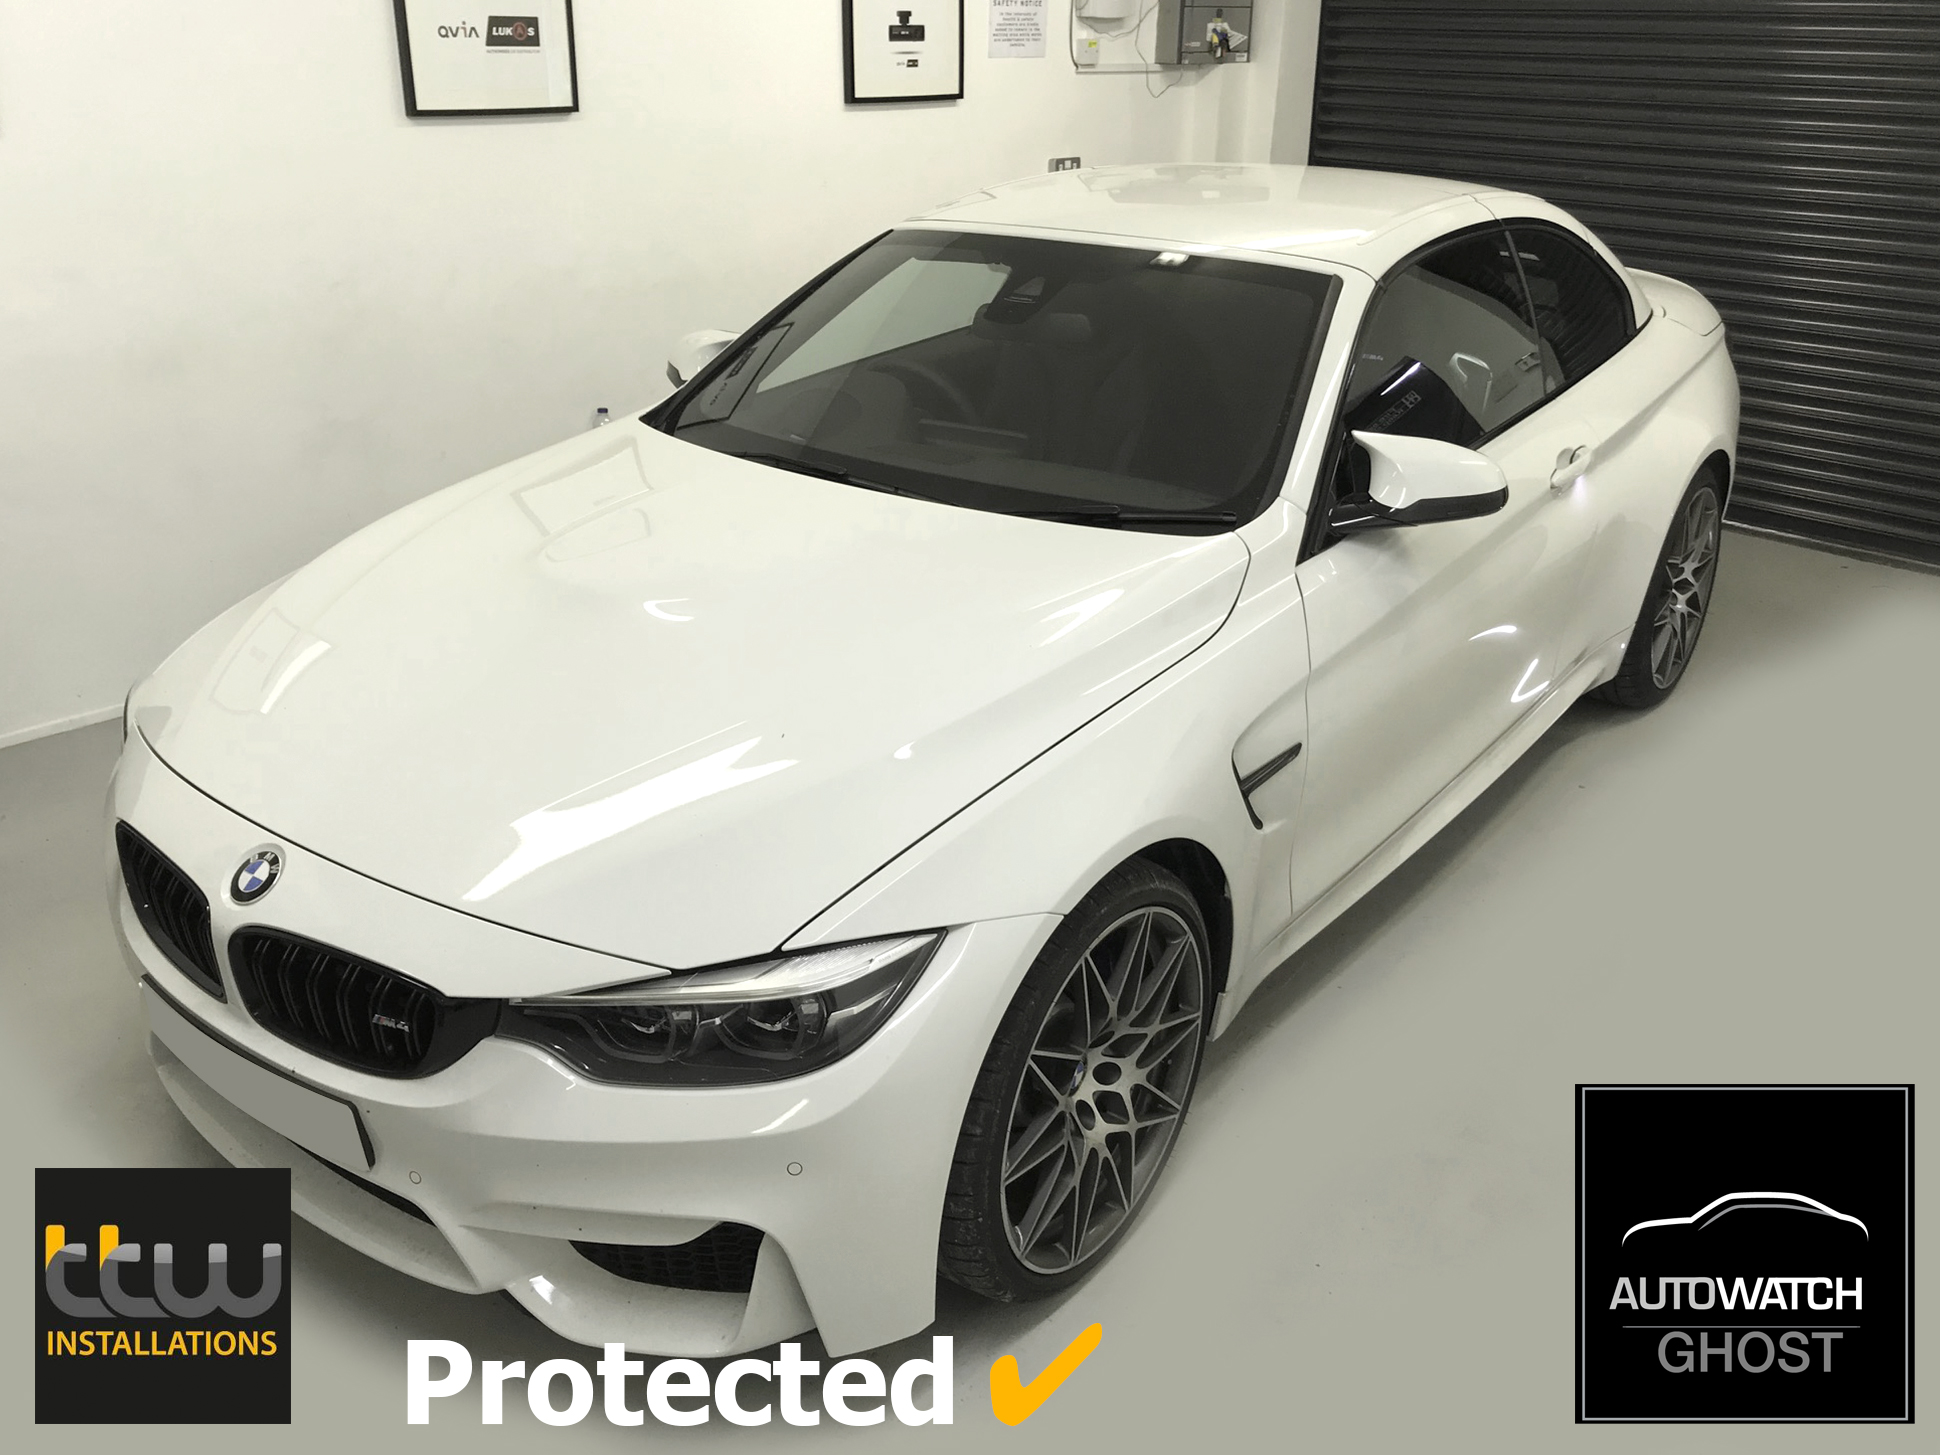 BMW M2 Autowatch Ghost 2 protected By TTW Installations